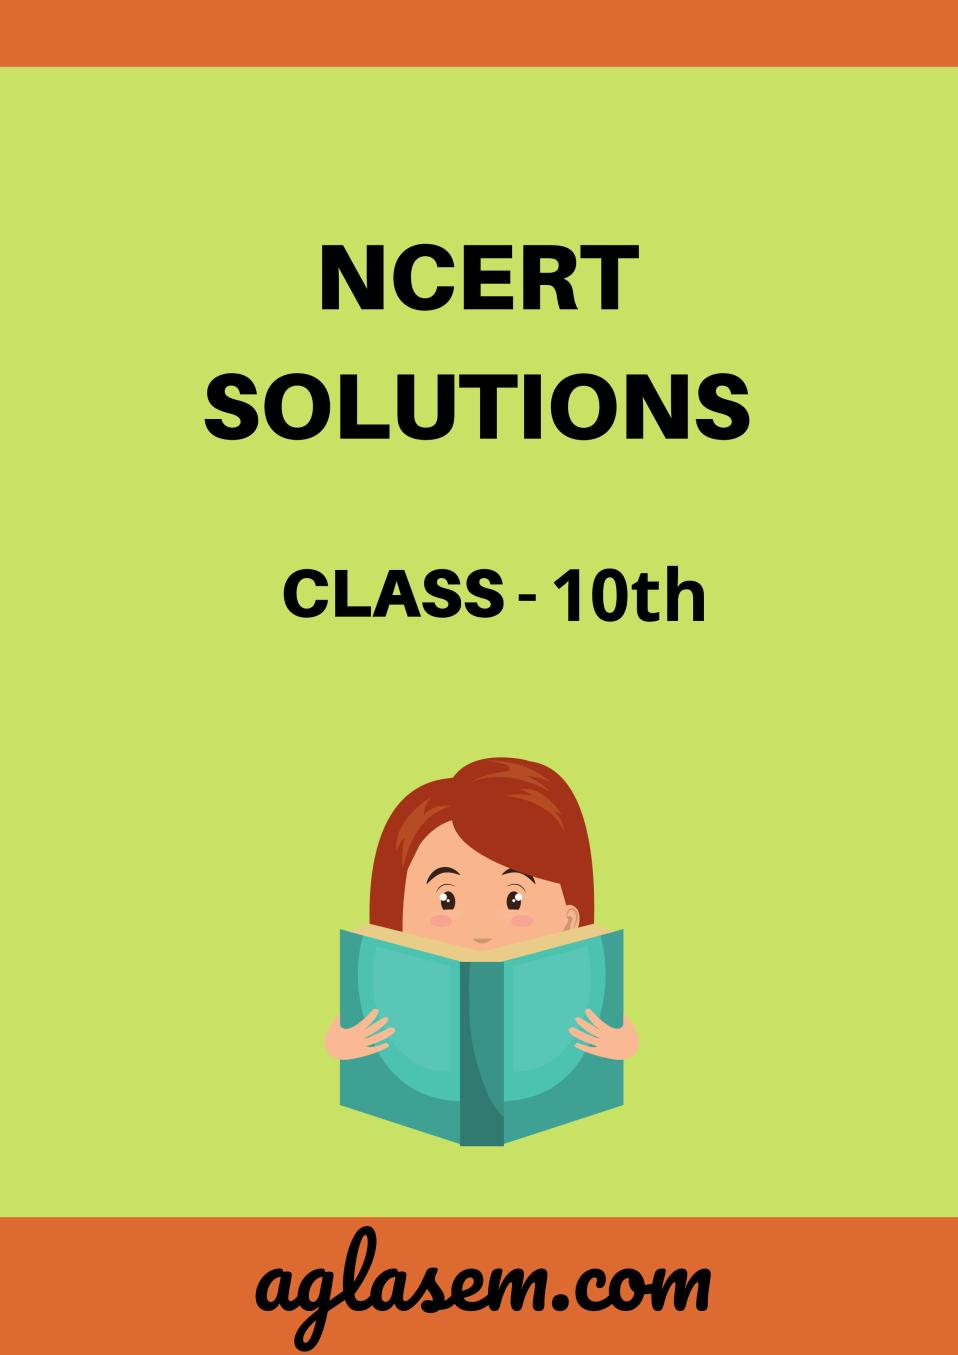 NCERT Solutions for Class 10 Social Science History Chapter 5 Print Culture and the Modern World